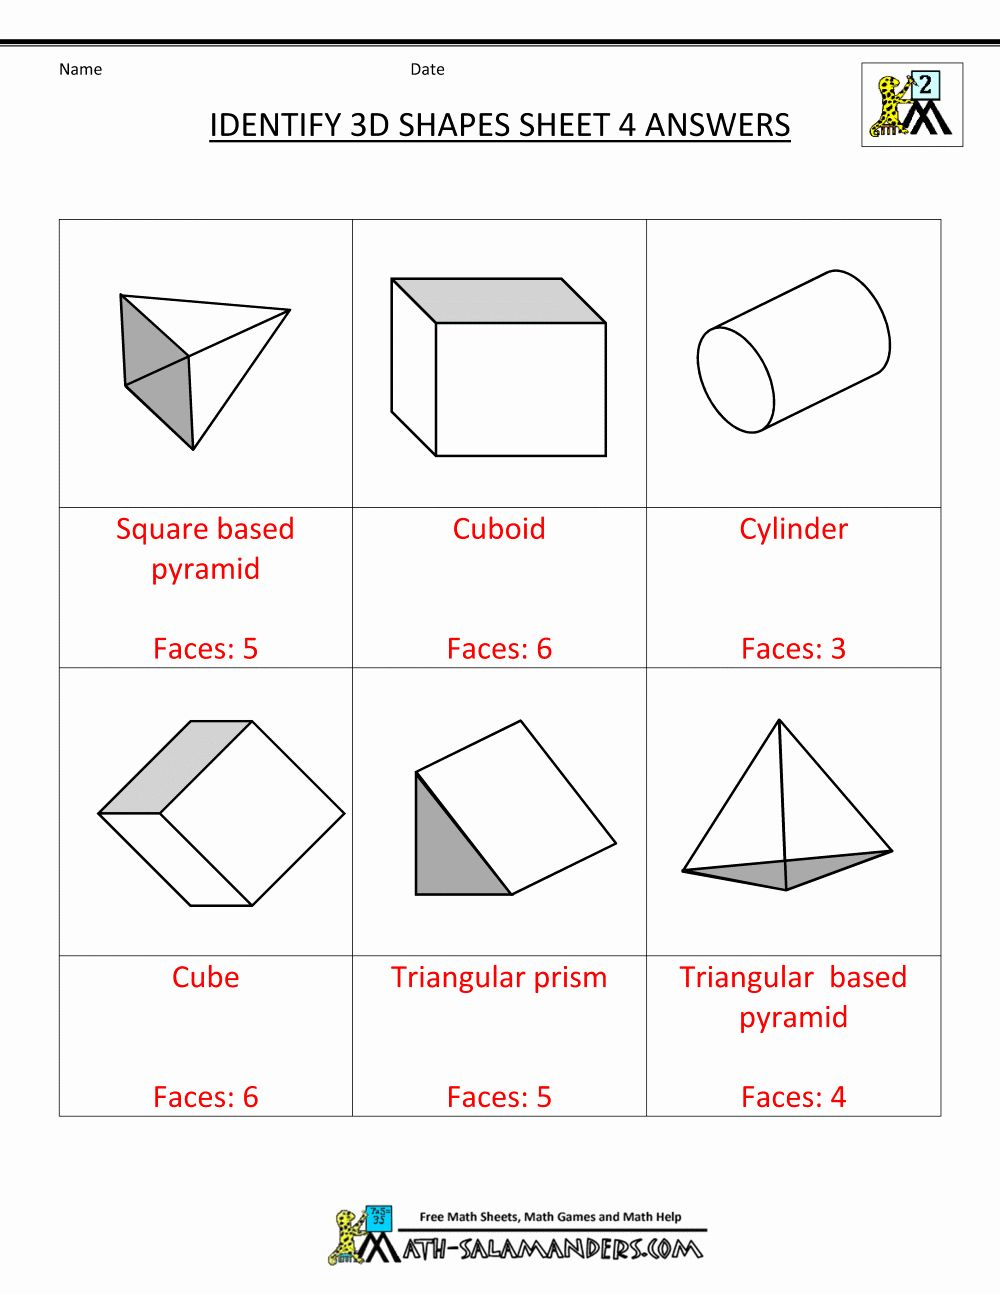 Students Of Grade 4 Through Grade 8 Batten Down The Hatches And Prepare For A Raging Storm Of Exercise In Thes In 2020 Shapes Worksheets Geometry Worksheets Worksheets